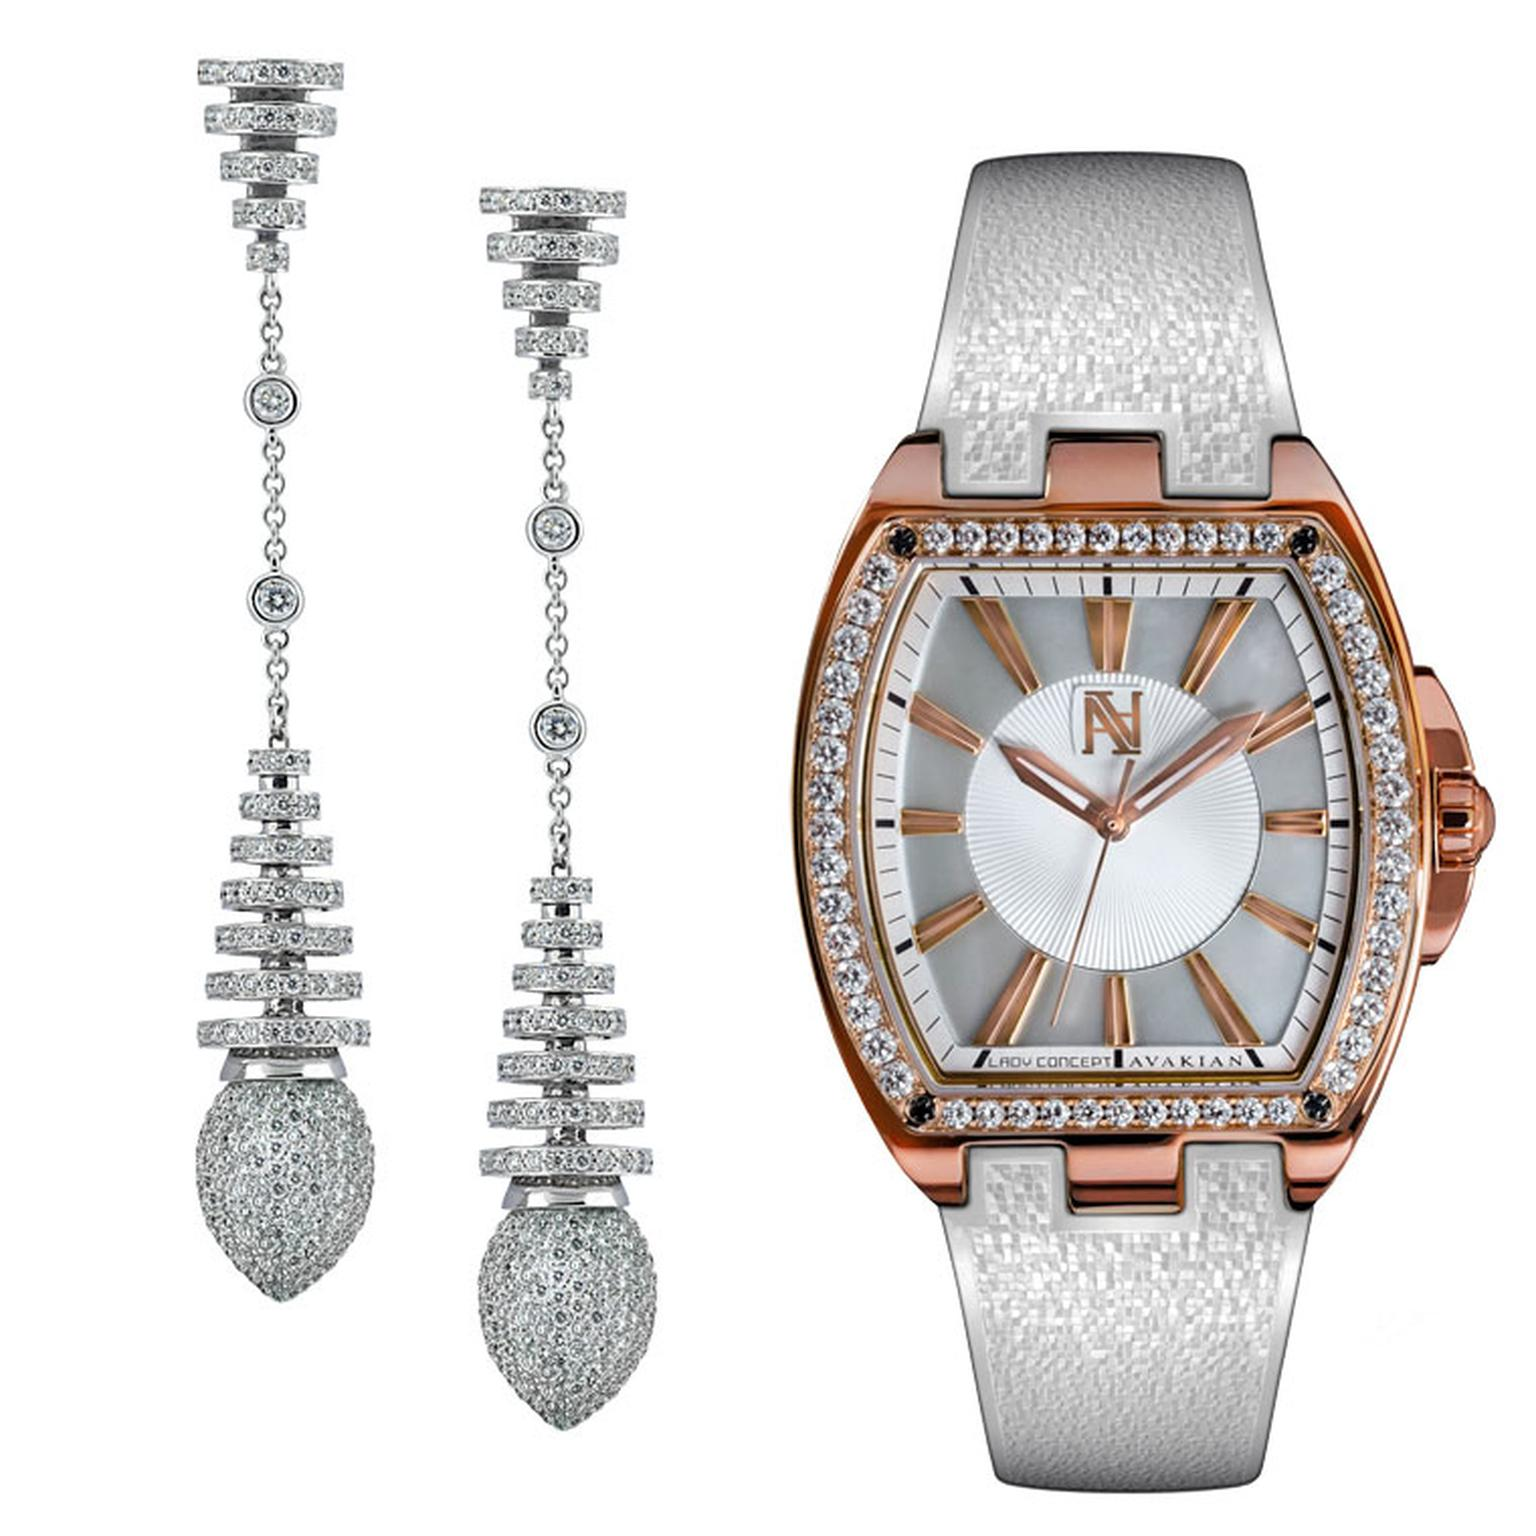 Avakian Lady Concept watch and Riviera collection earrings